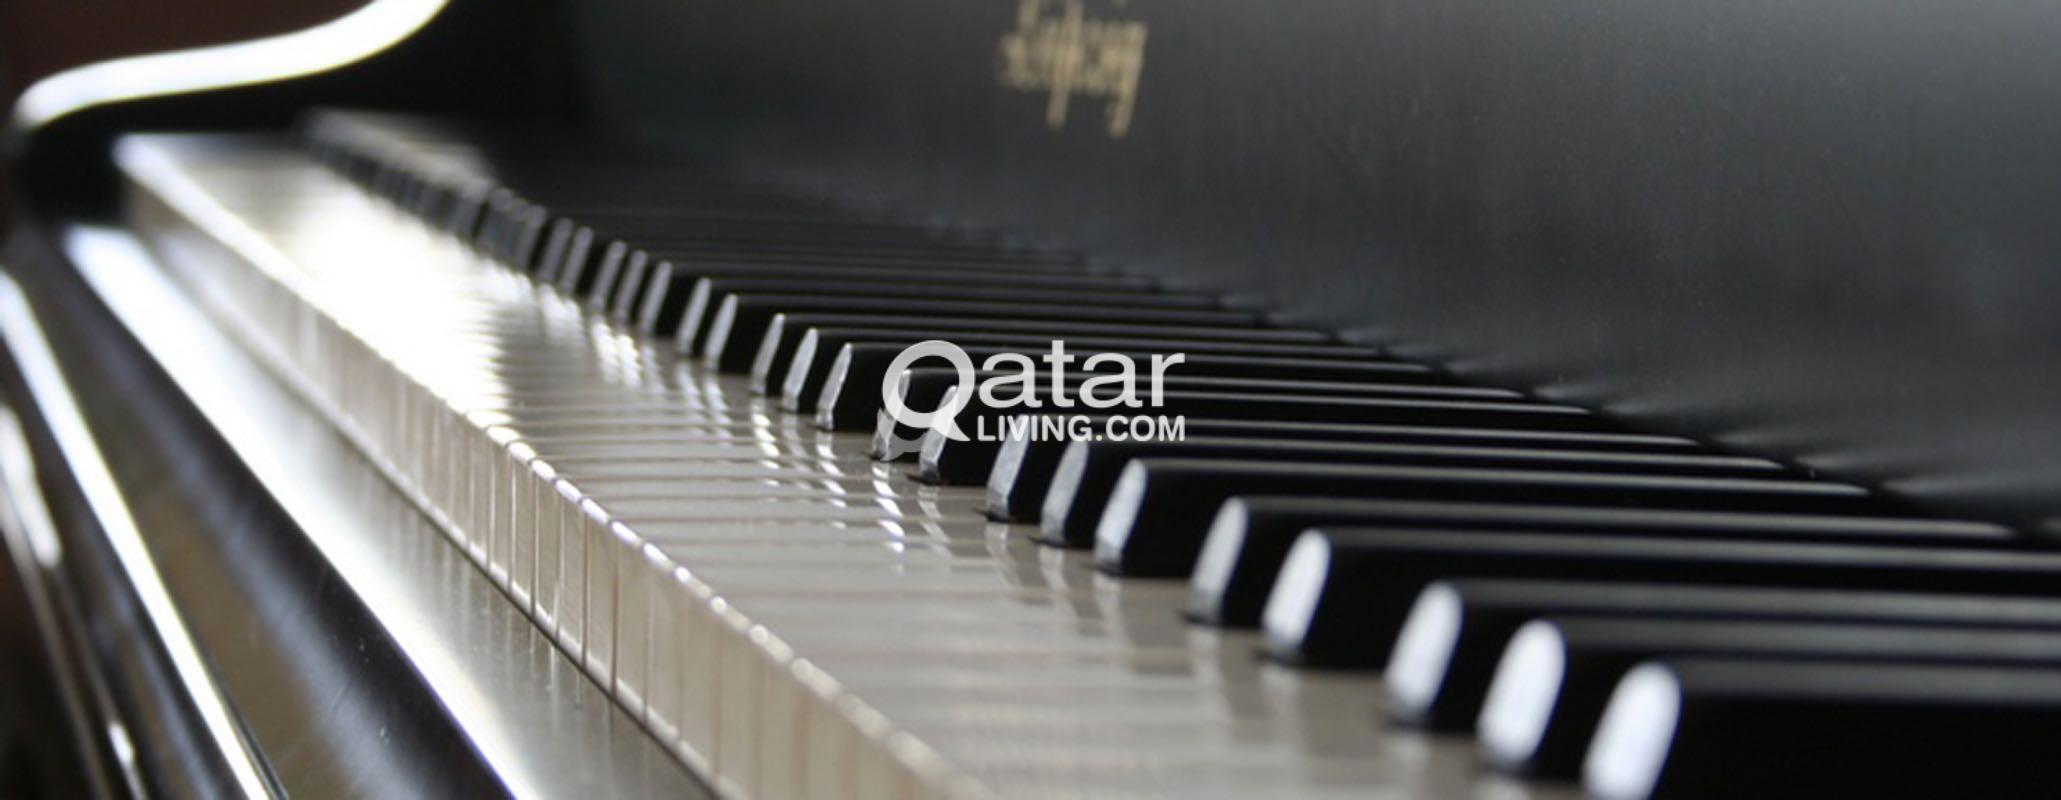 Pianist for Event | Qatar Living